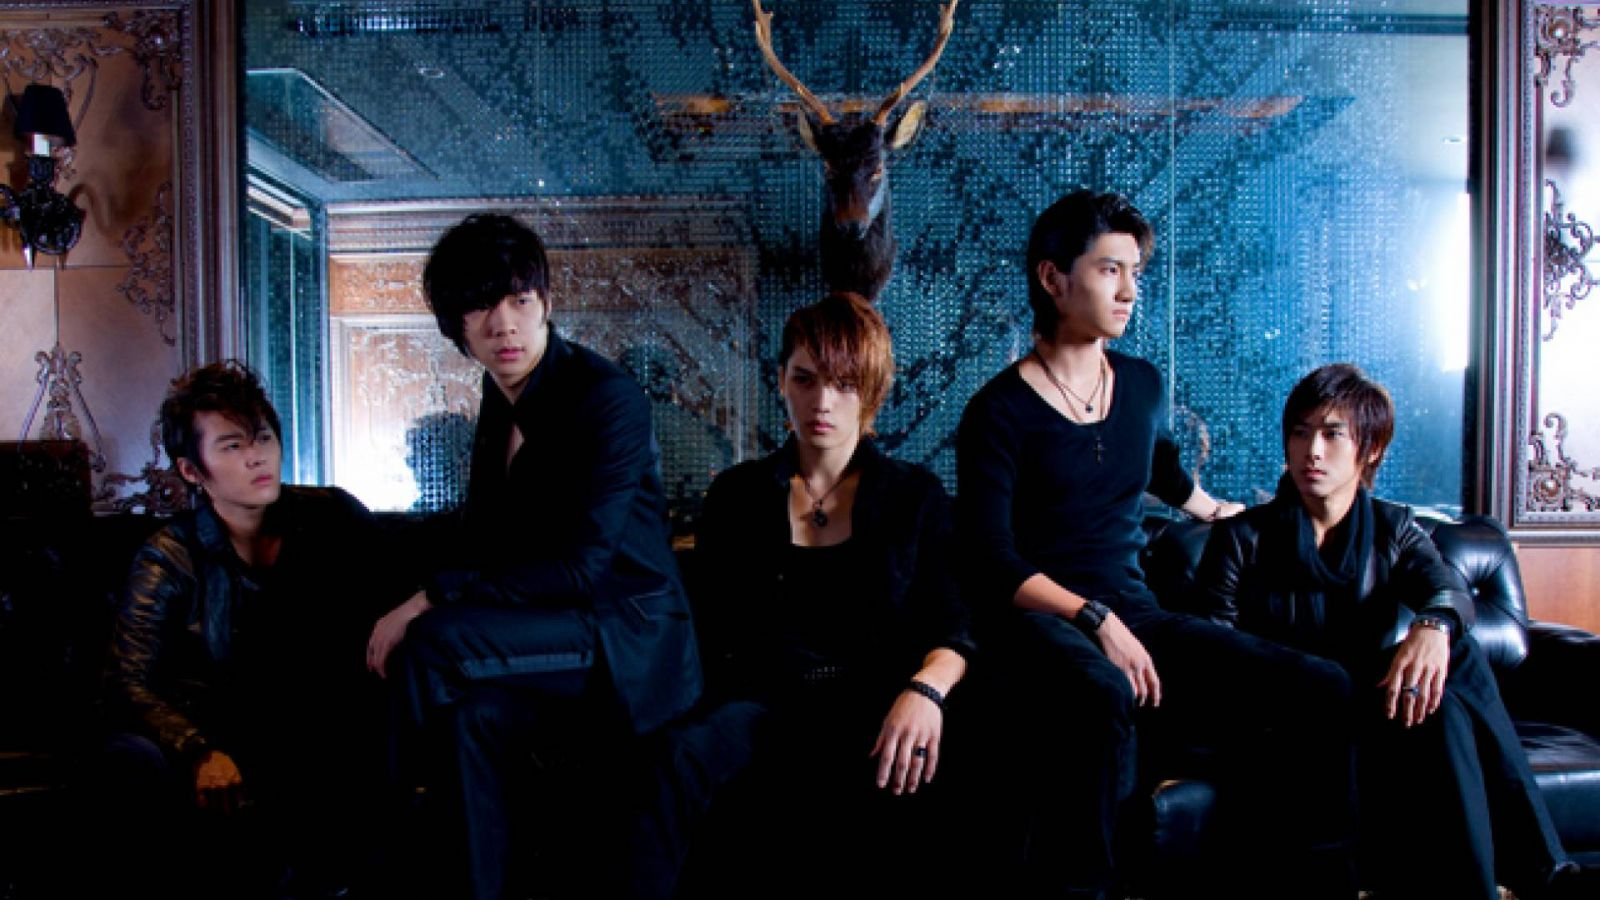 DBSK:n History in Japan © Avex Entertainment Inc.